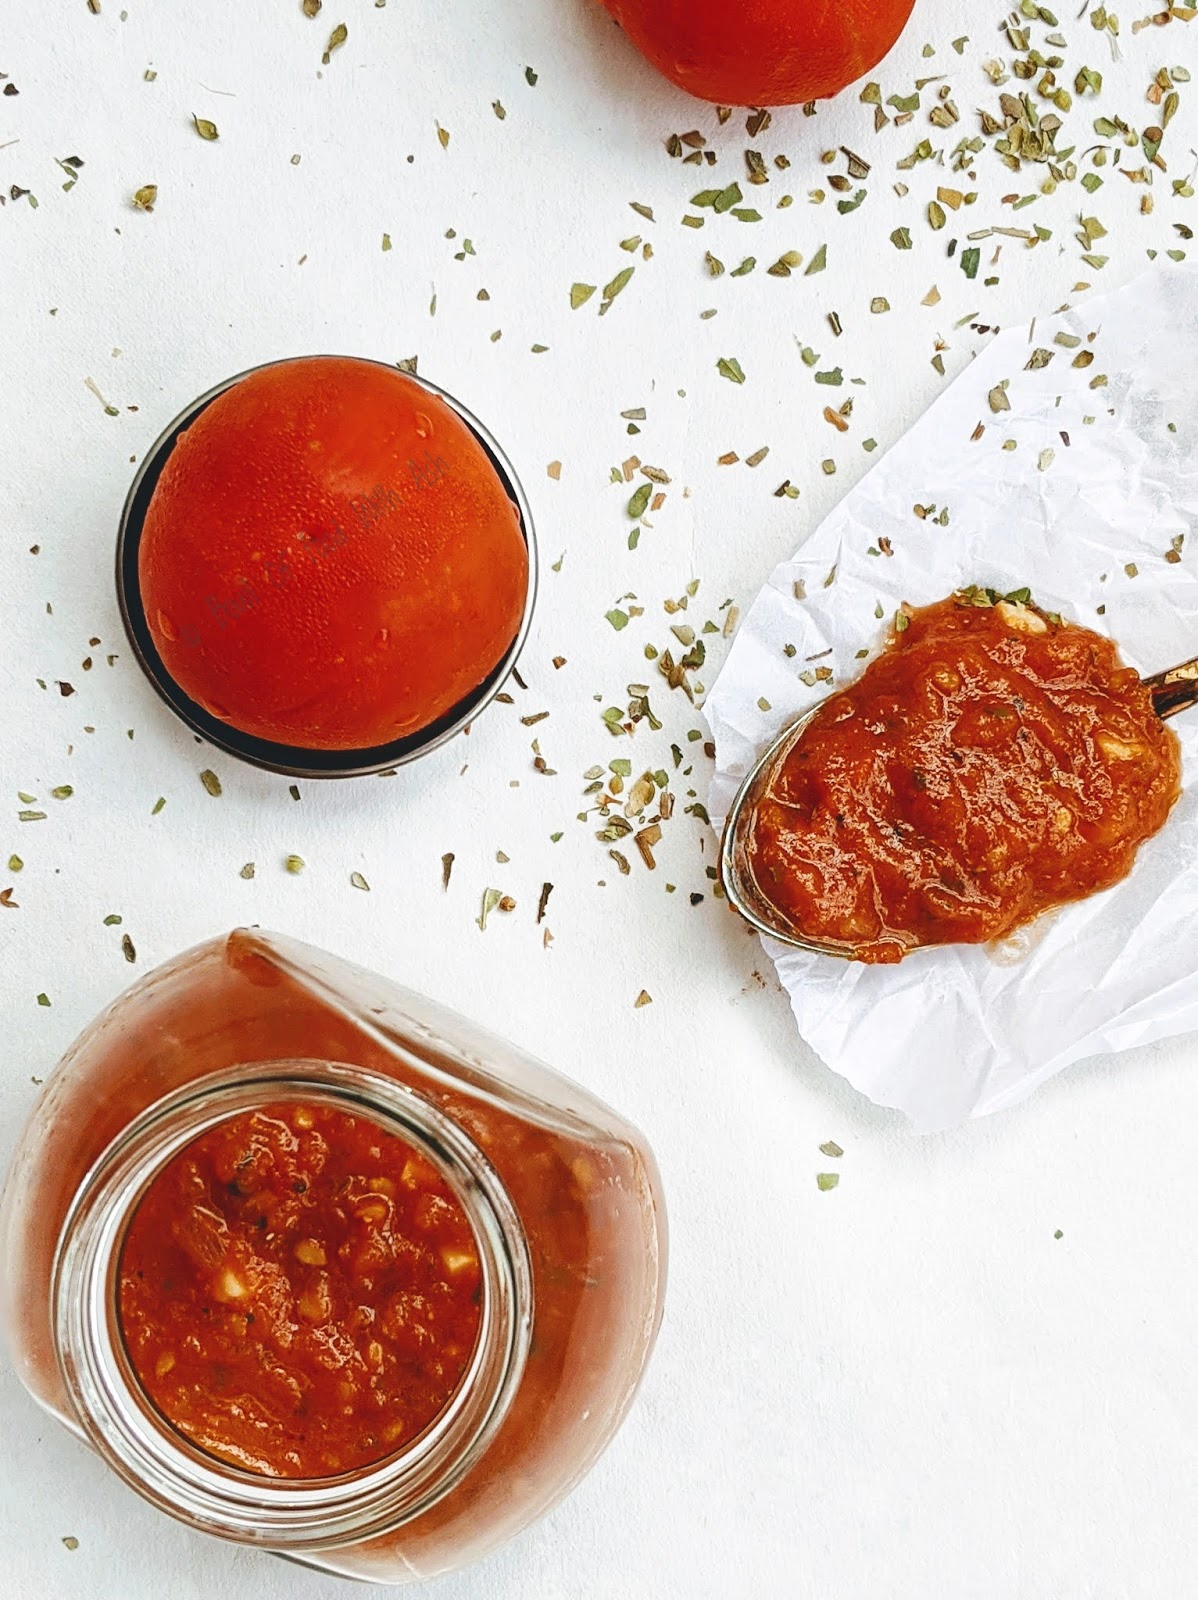 Easy Homemade Pizza Sauce Recipe   How To Make Pizza Sauce at home